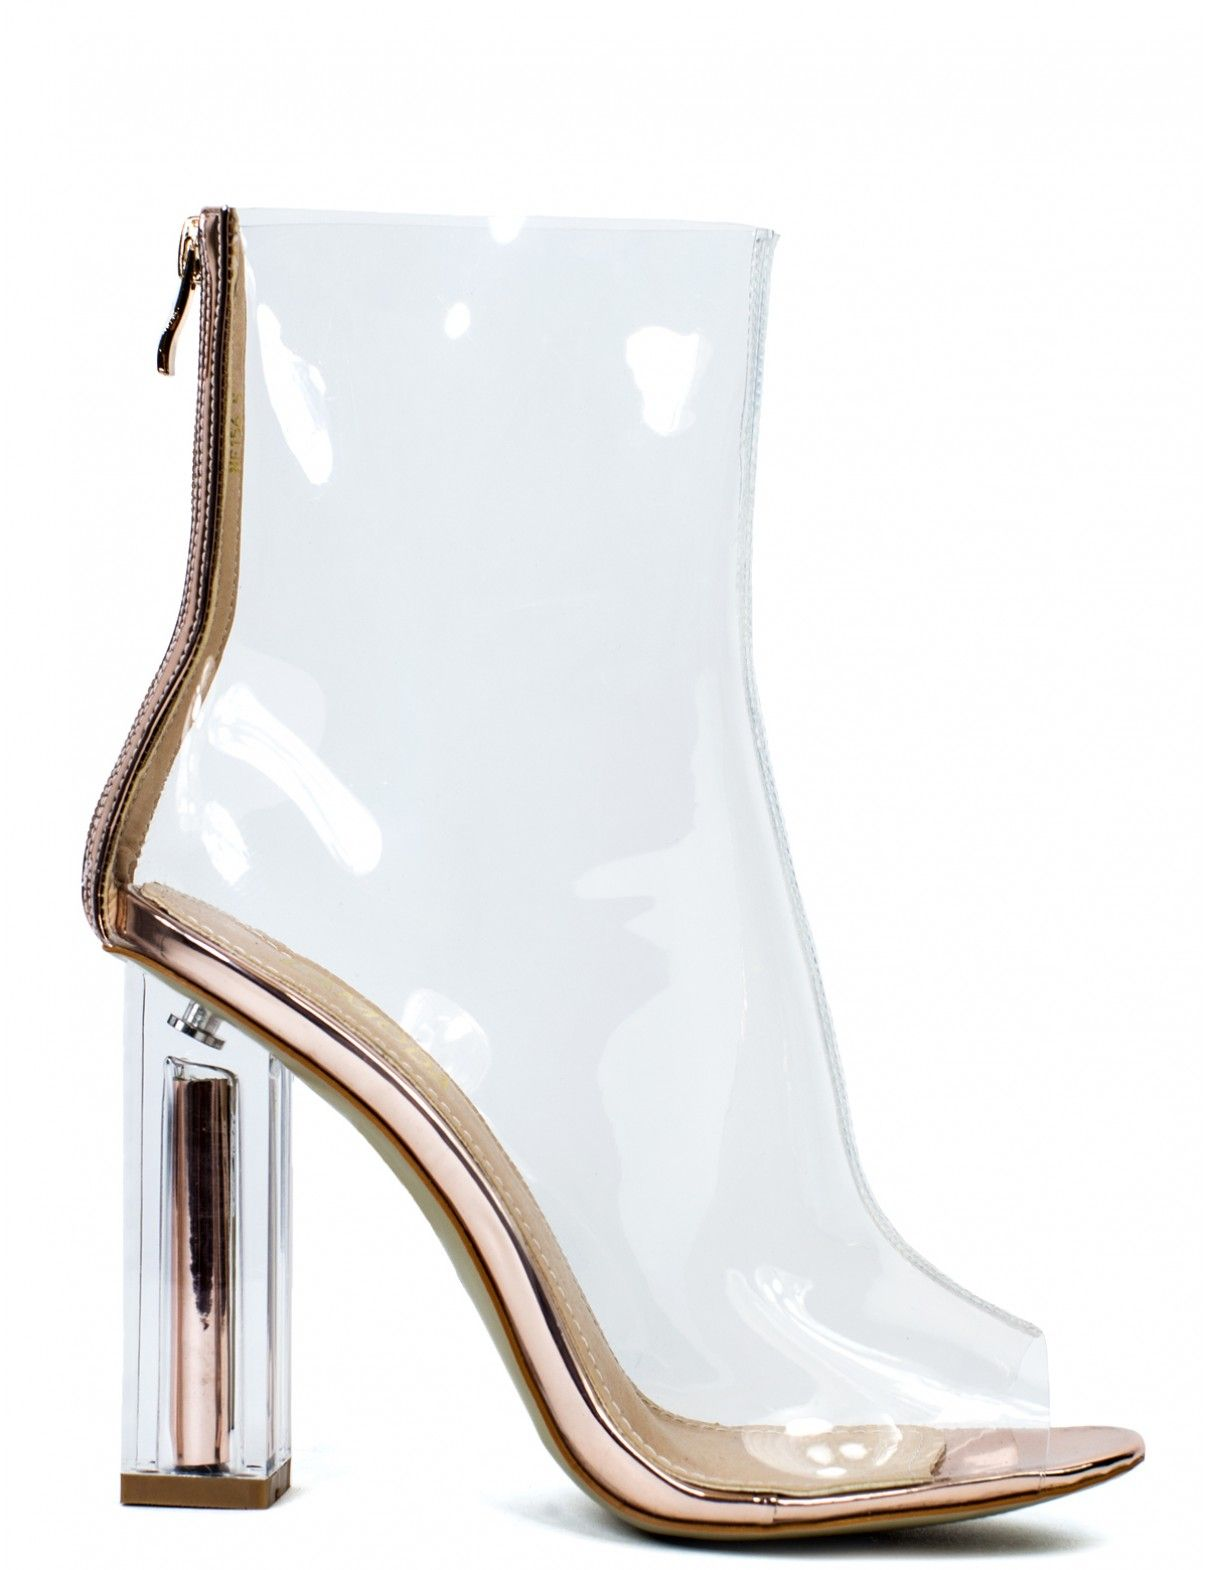 6829ae0399ab GOLD DIGGER CLEAR PERSPEX ROSE GOLD BLOCK HEELED BOOTS - As seen on SELENA  GOMEZ! Exact match from LAMODA